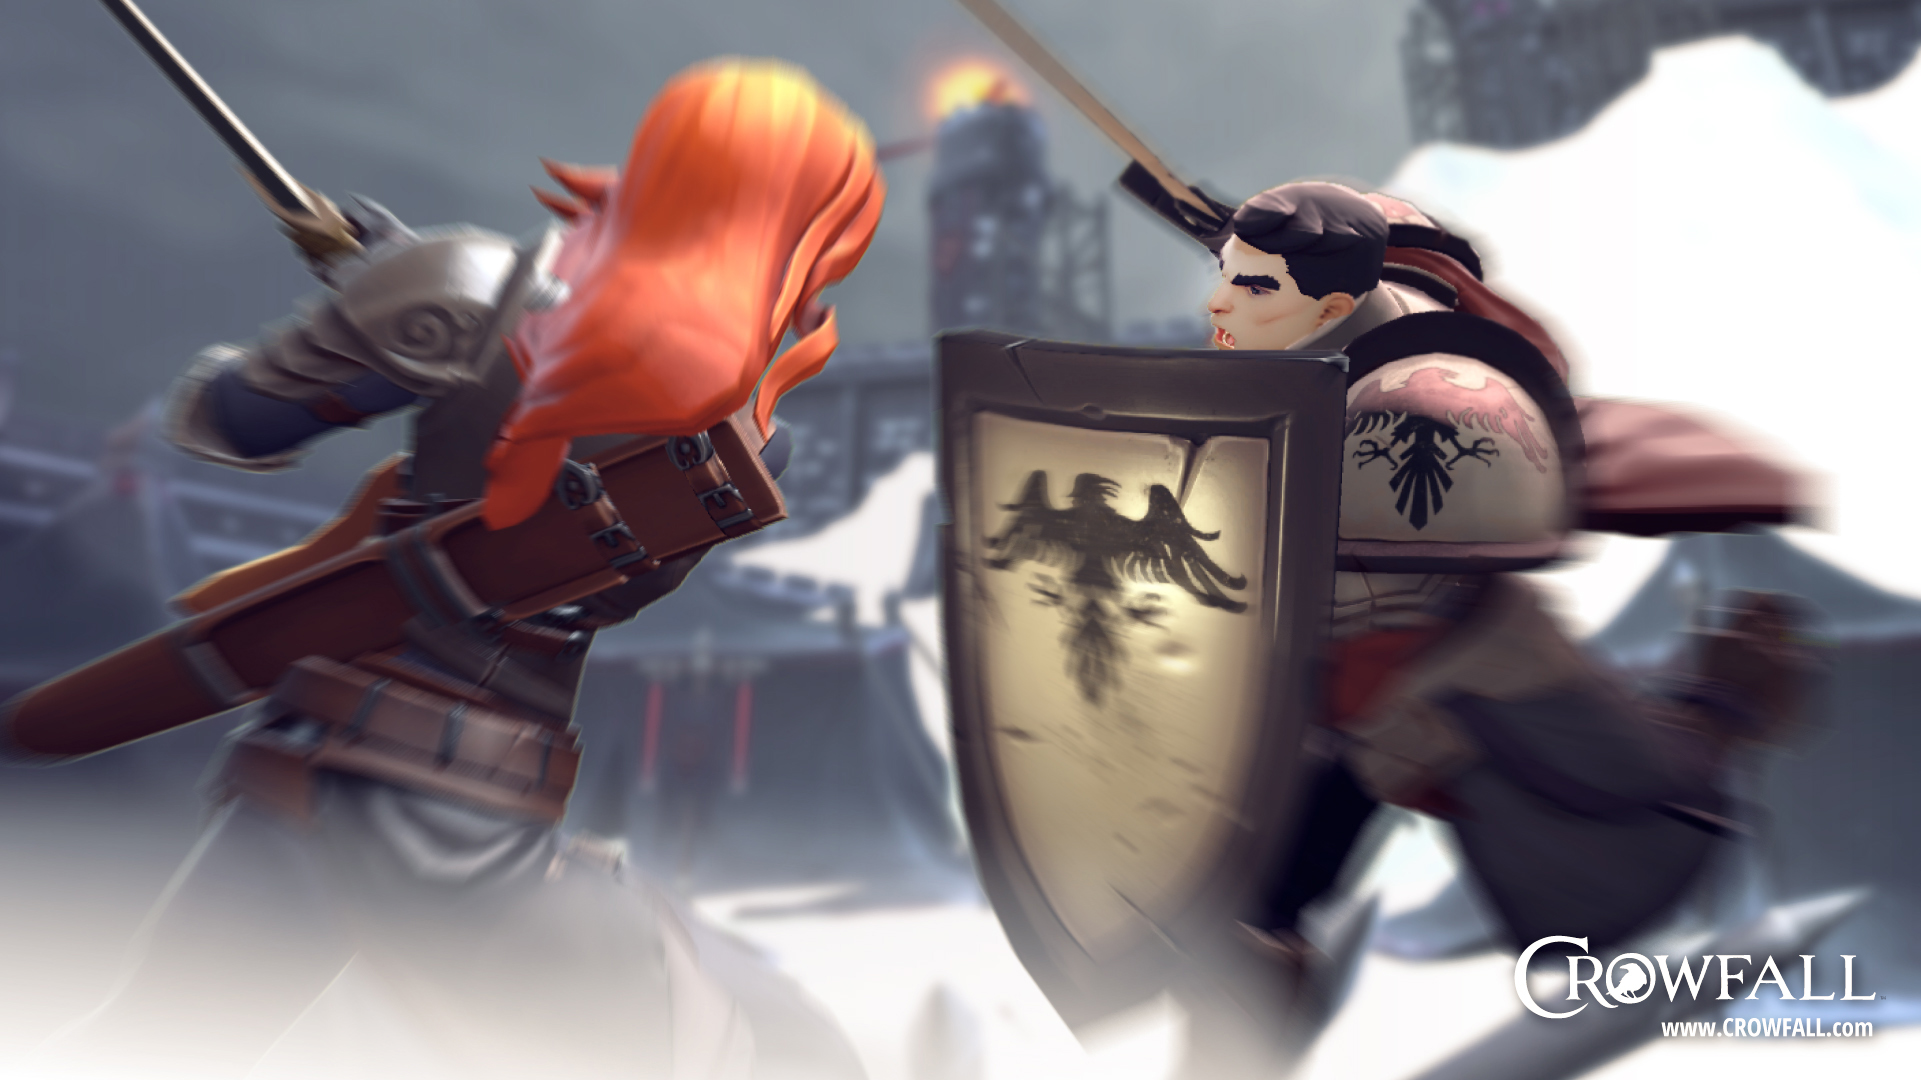 Crowfall Duel wallpaper